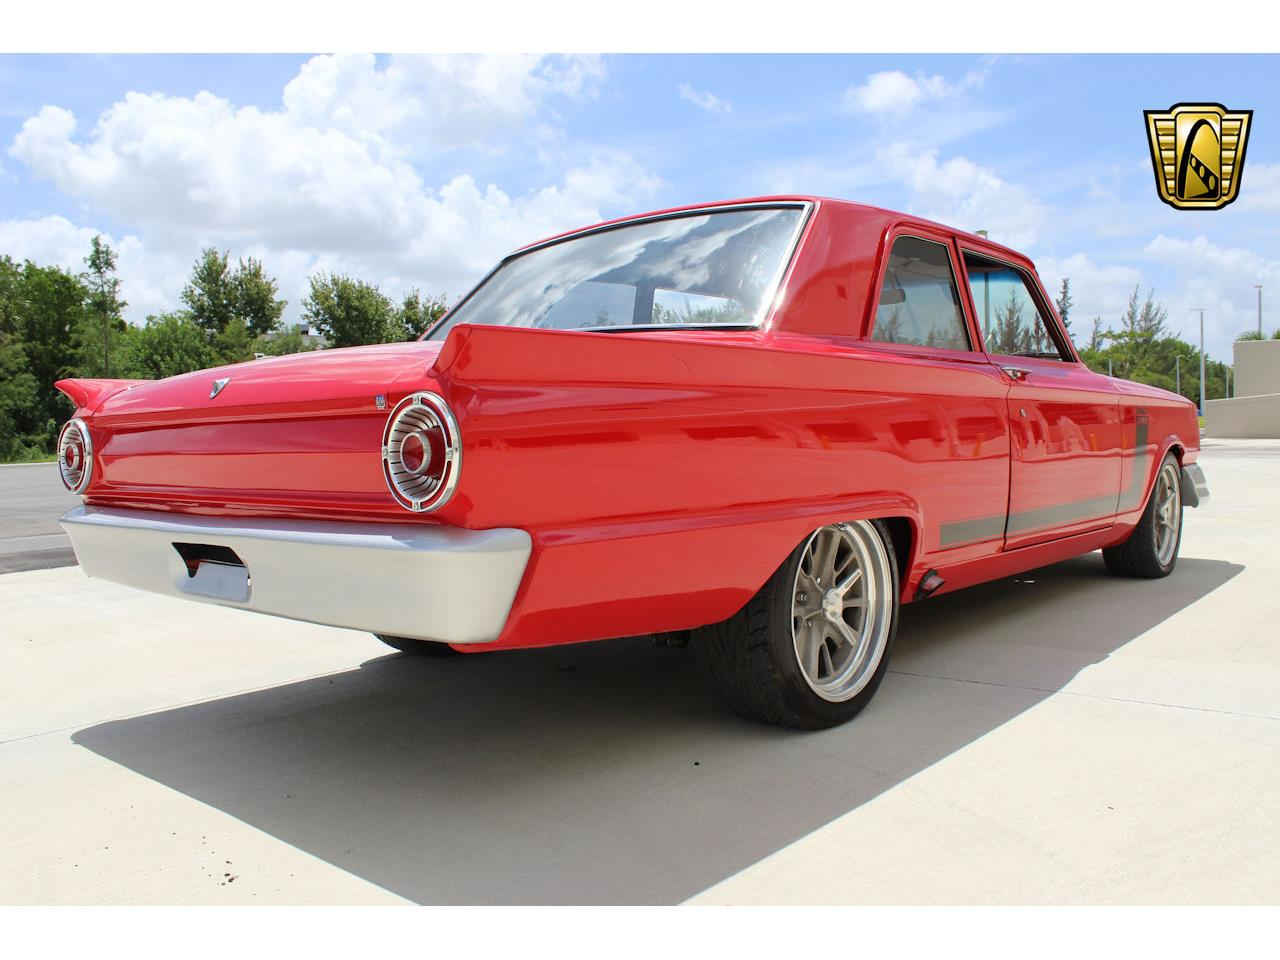 Large Picture of Classic '63 Ford Fairlane - $27,595.00 Offered by Gateway Classic Cars - Fort Lauderdale - MSBB